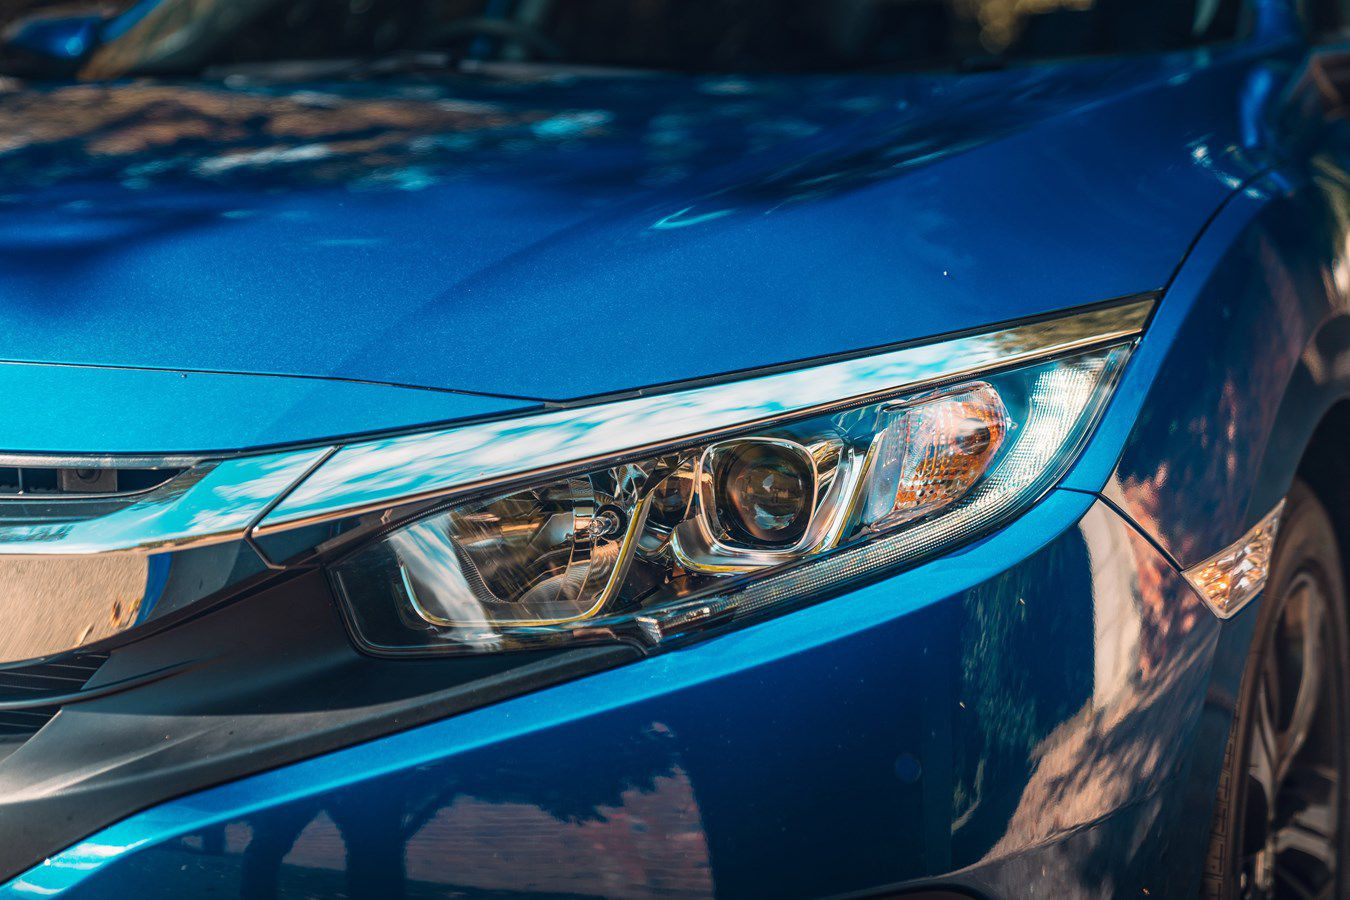 Close up of a headlight on a Honda Civic